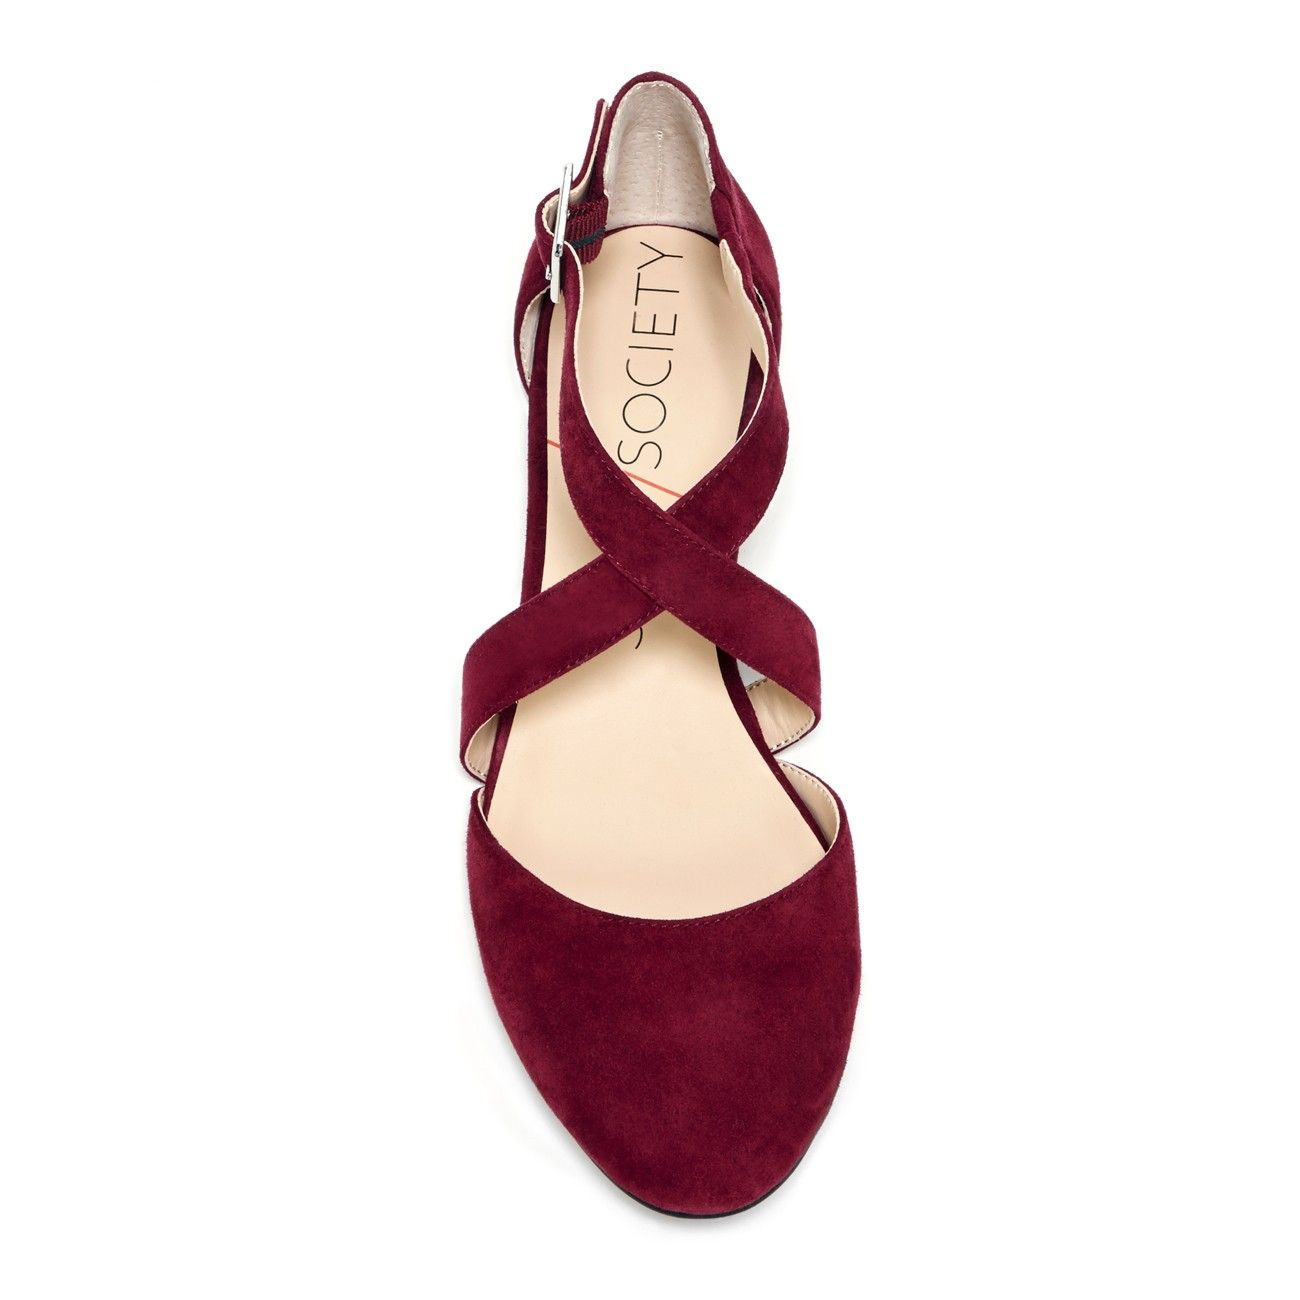 617f9cdea5a Sole Society - Women's Shoes at Surprisingly Affordable Prices ...